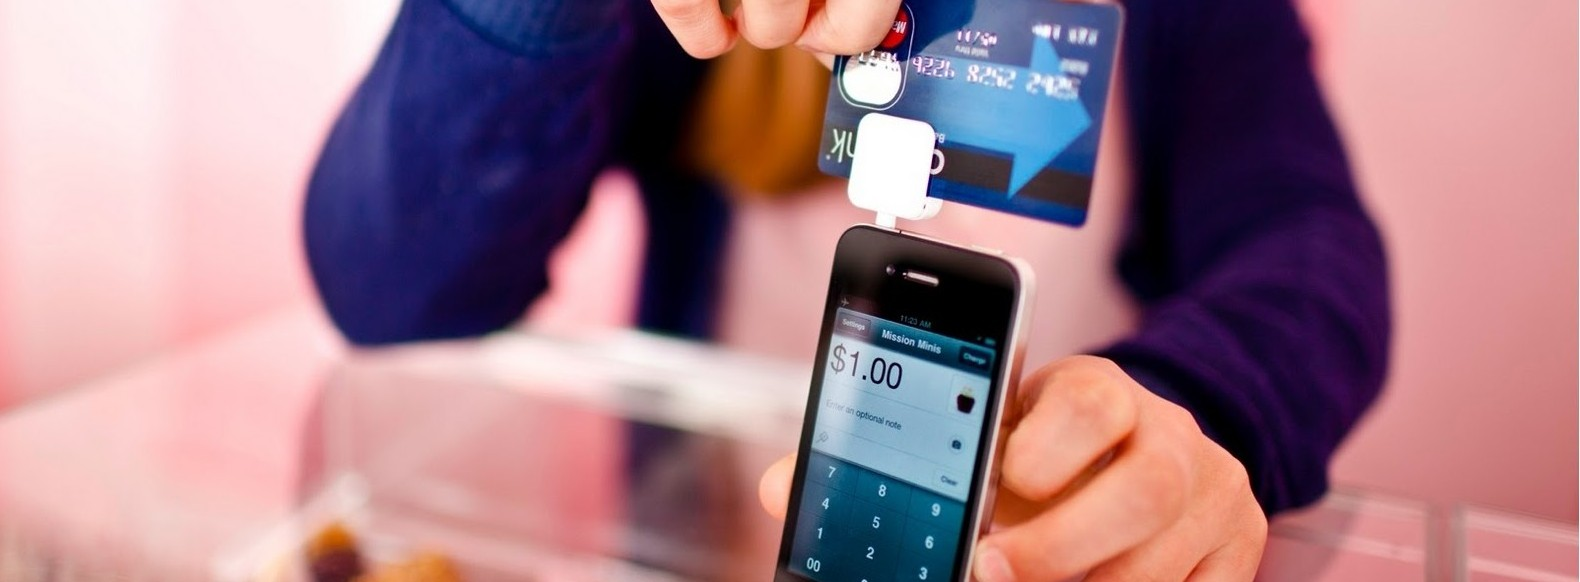 Square ends 2012 processing $10b annually, 40k retailers onboard, looks to expand globally in 2013